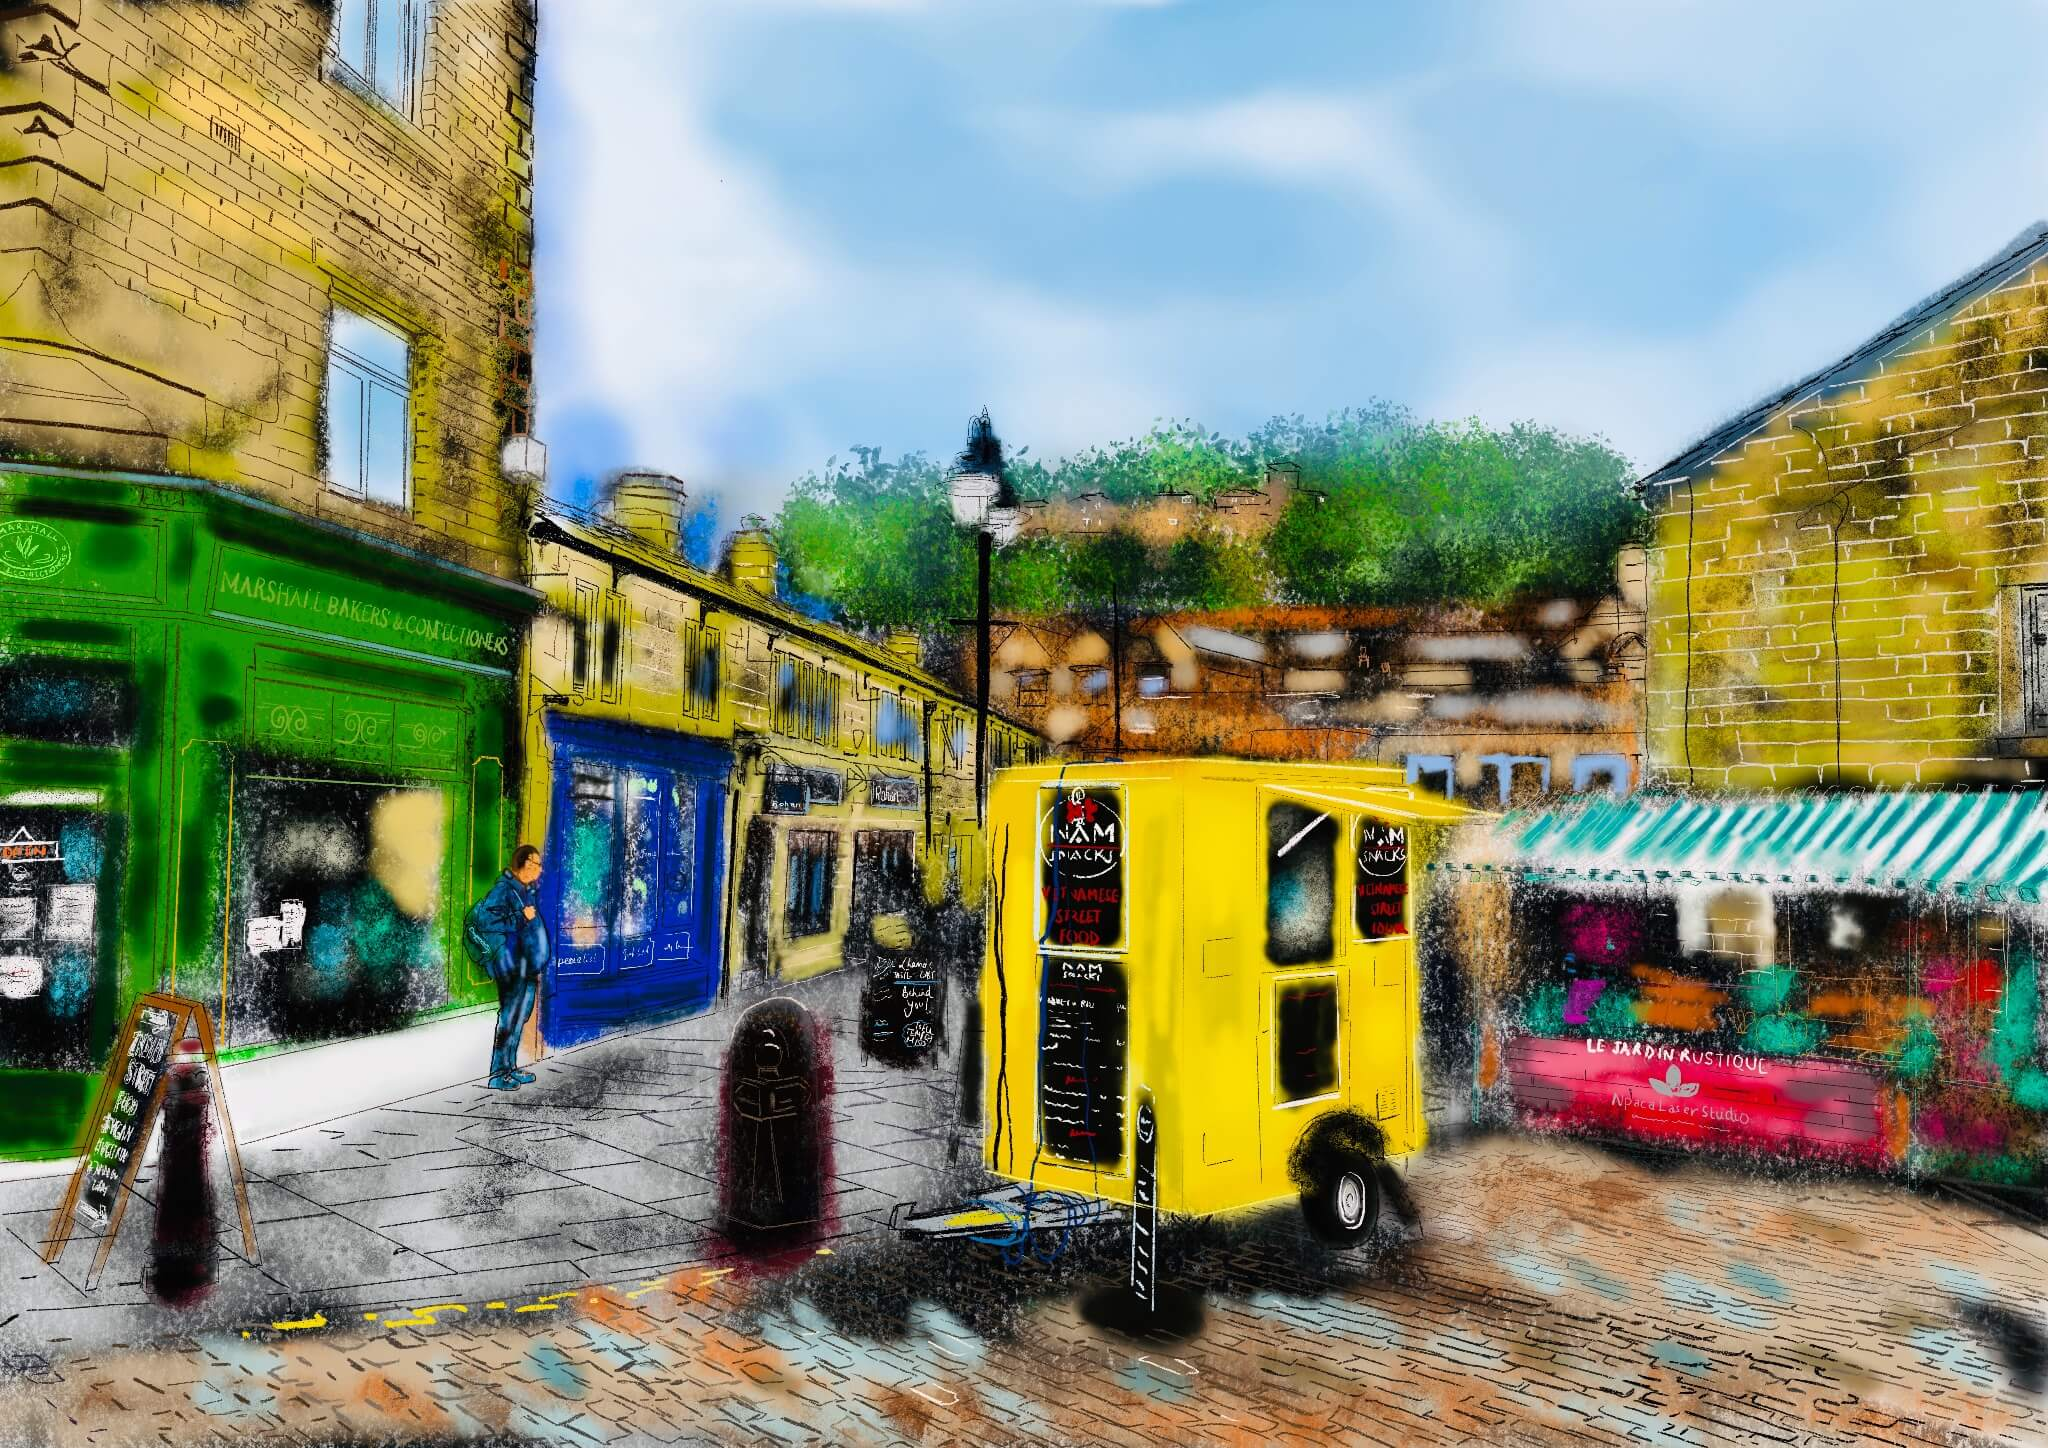 Hebden Bridge town centre